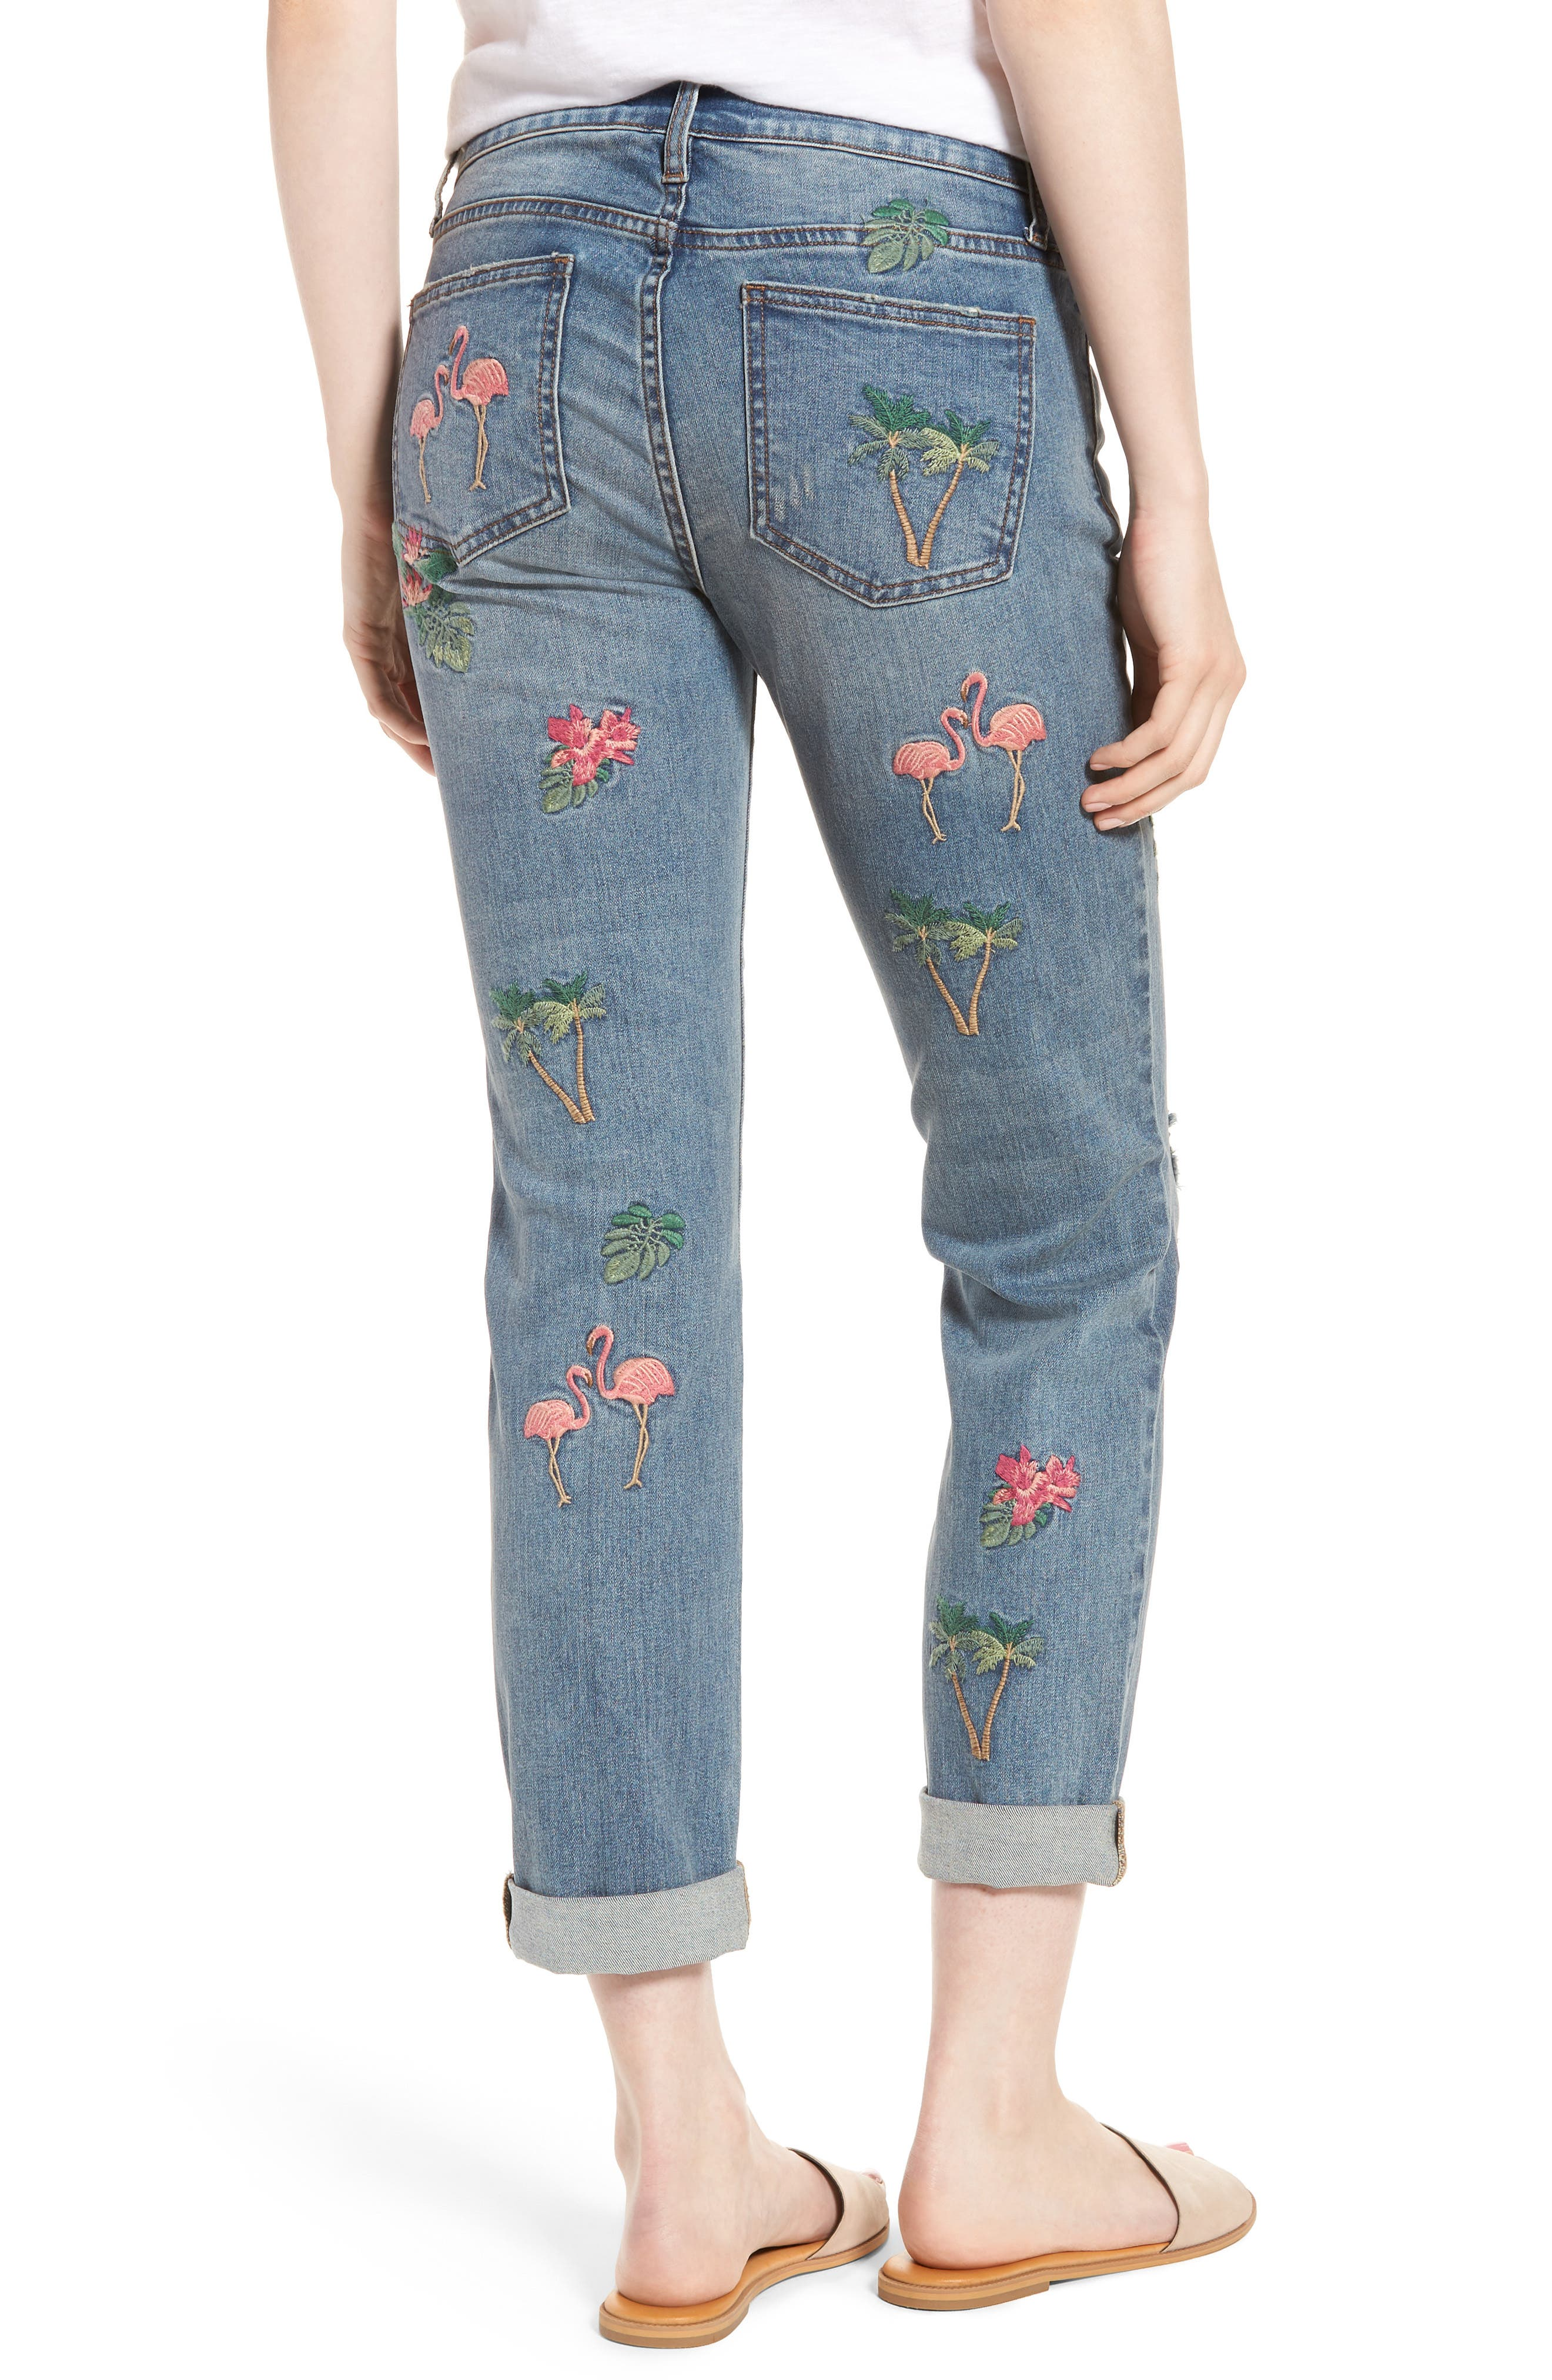 Flamingo Embroidery Jeans,                             Alternate thumbnail 3, color,                             BLUE W/ EMBROIDER